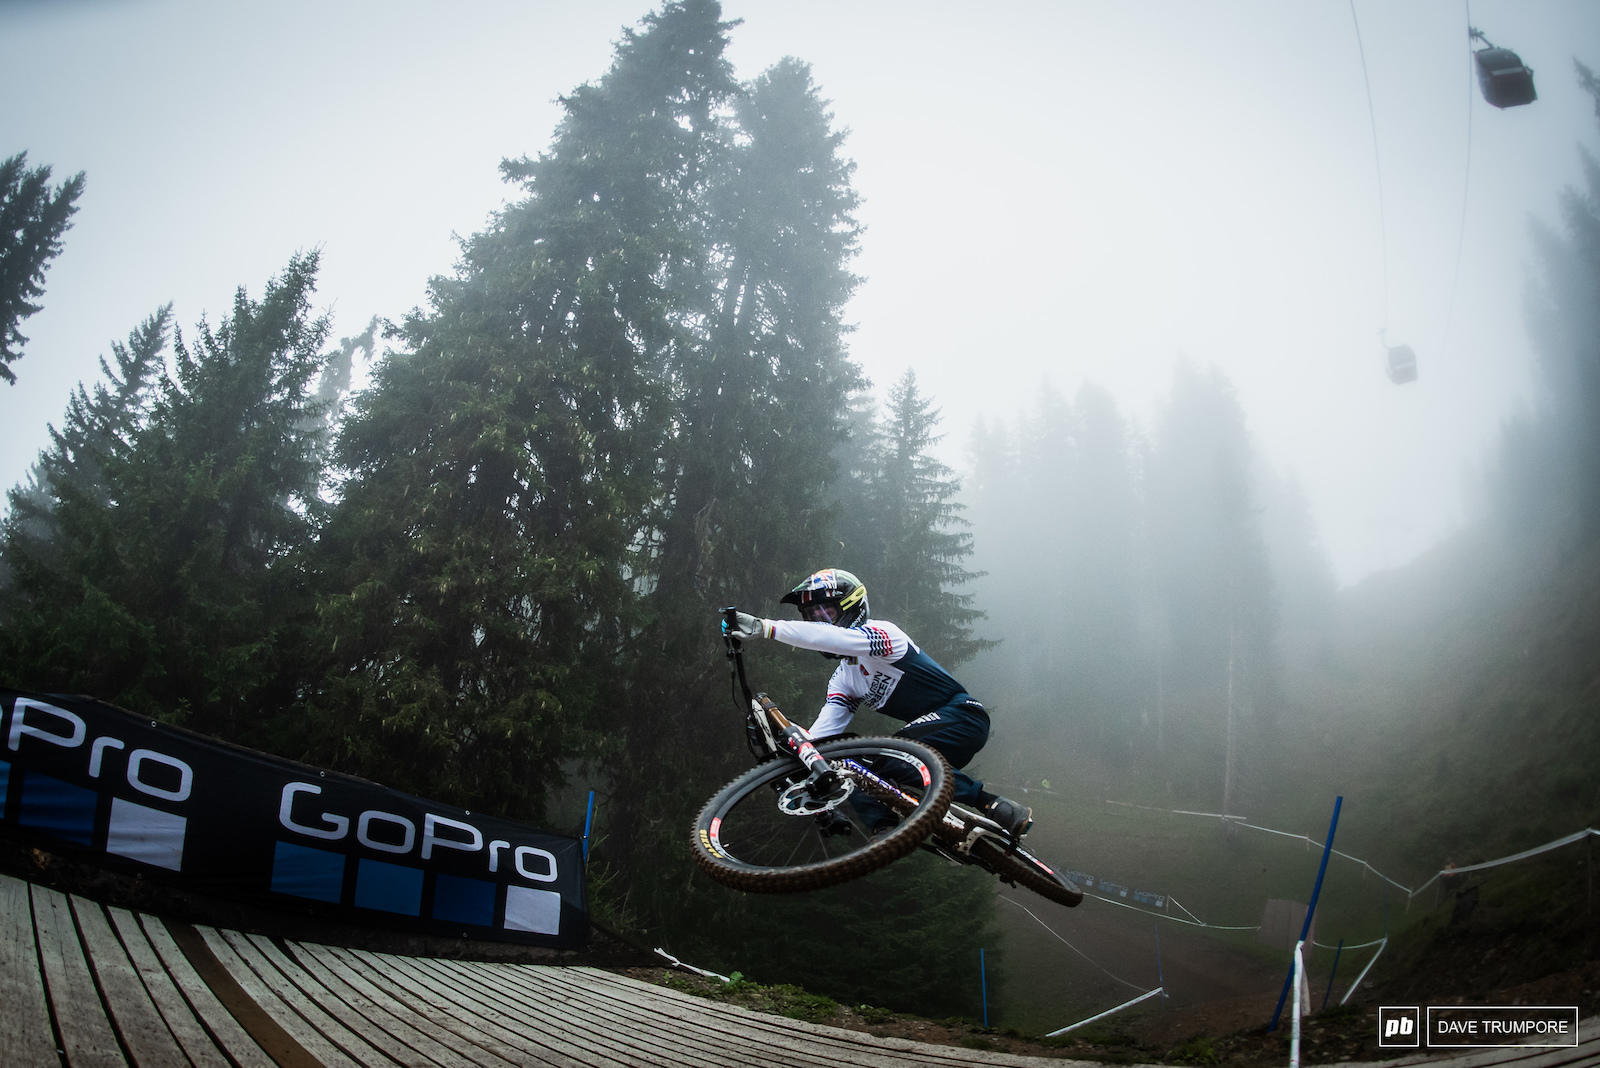 Dany Hart flattening things out in the fog.